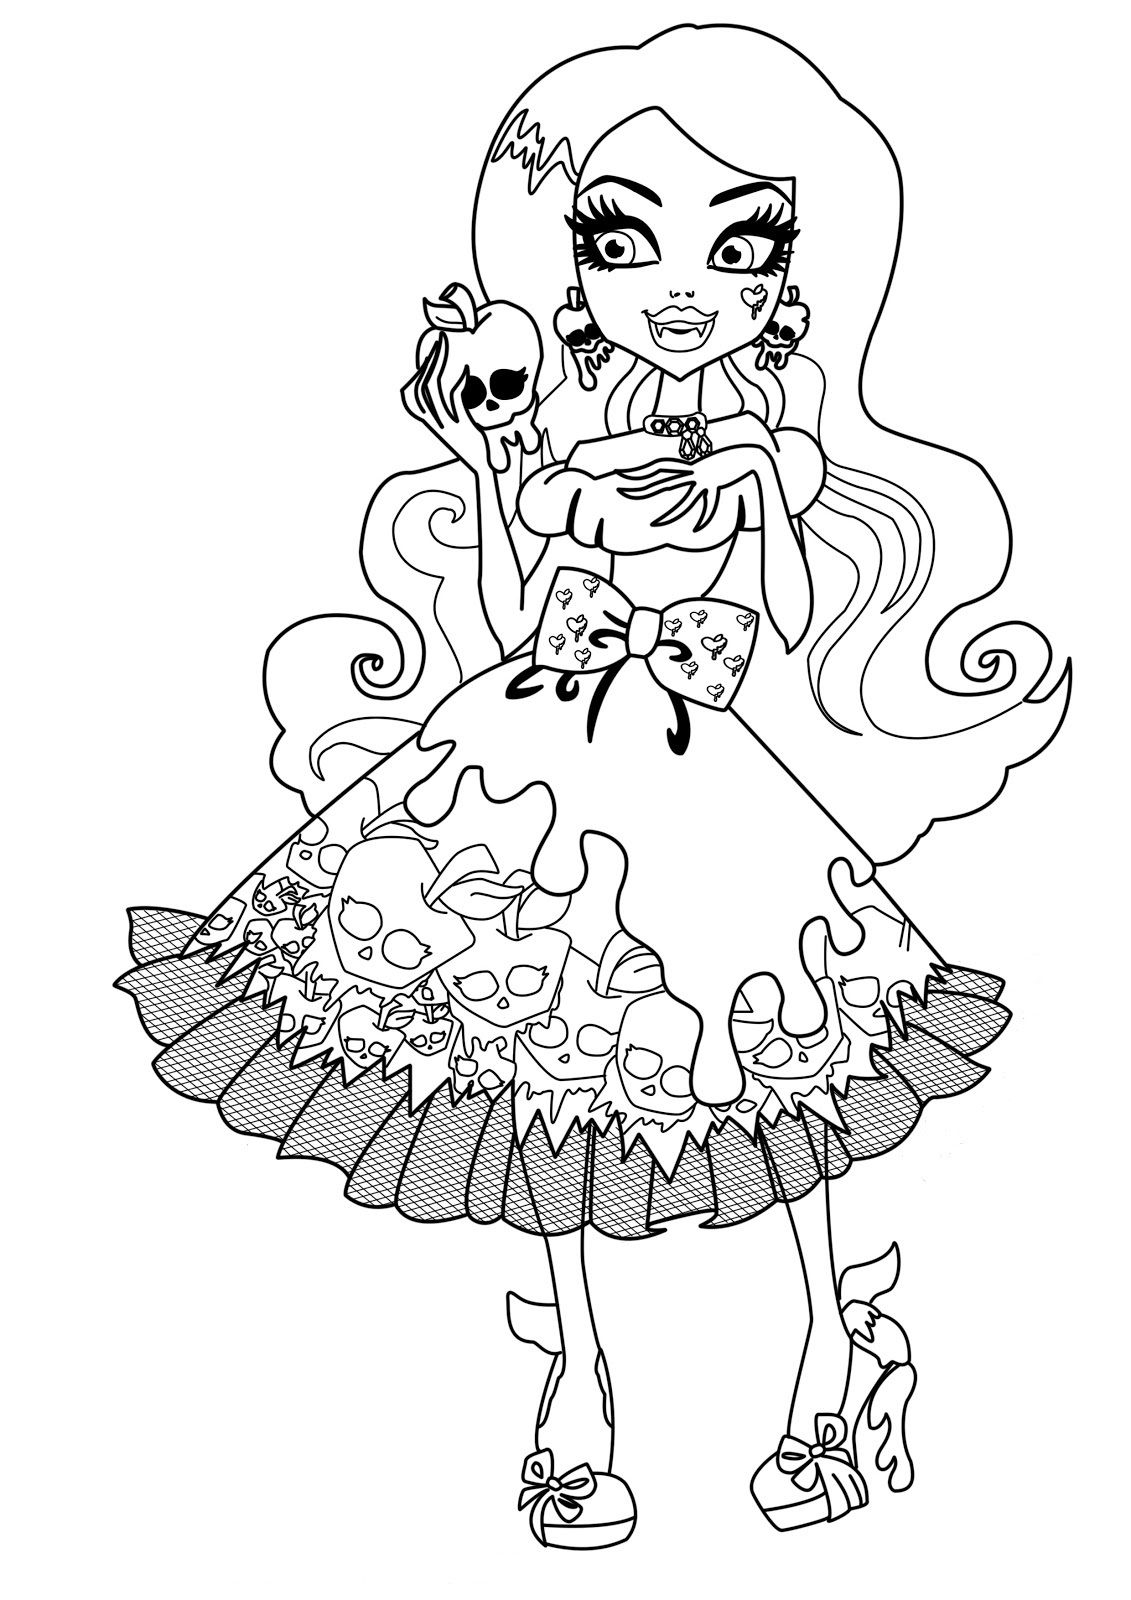 Draculaura Monster High Dolls Coloring Pages Monster High Coloring to Print Of Wydowna Spider by Elfkena On Deviantart to Print